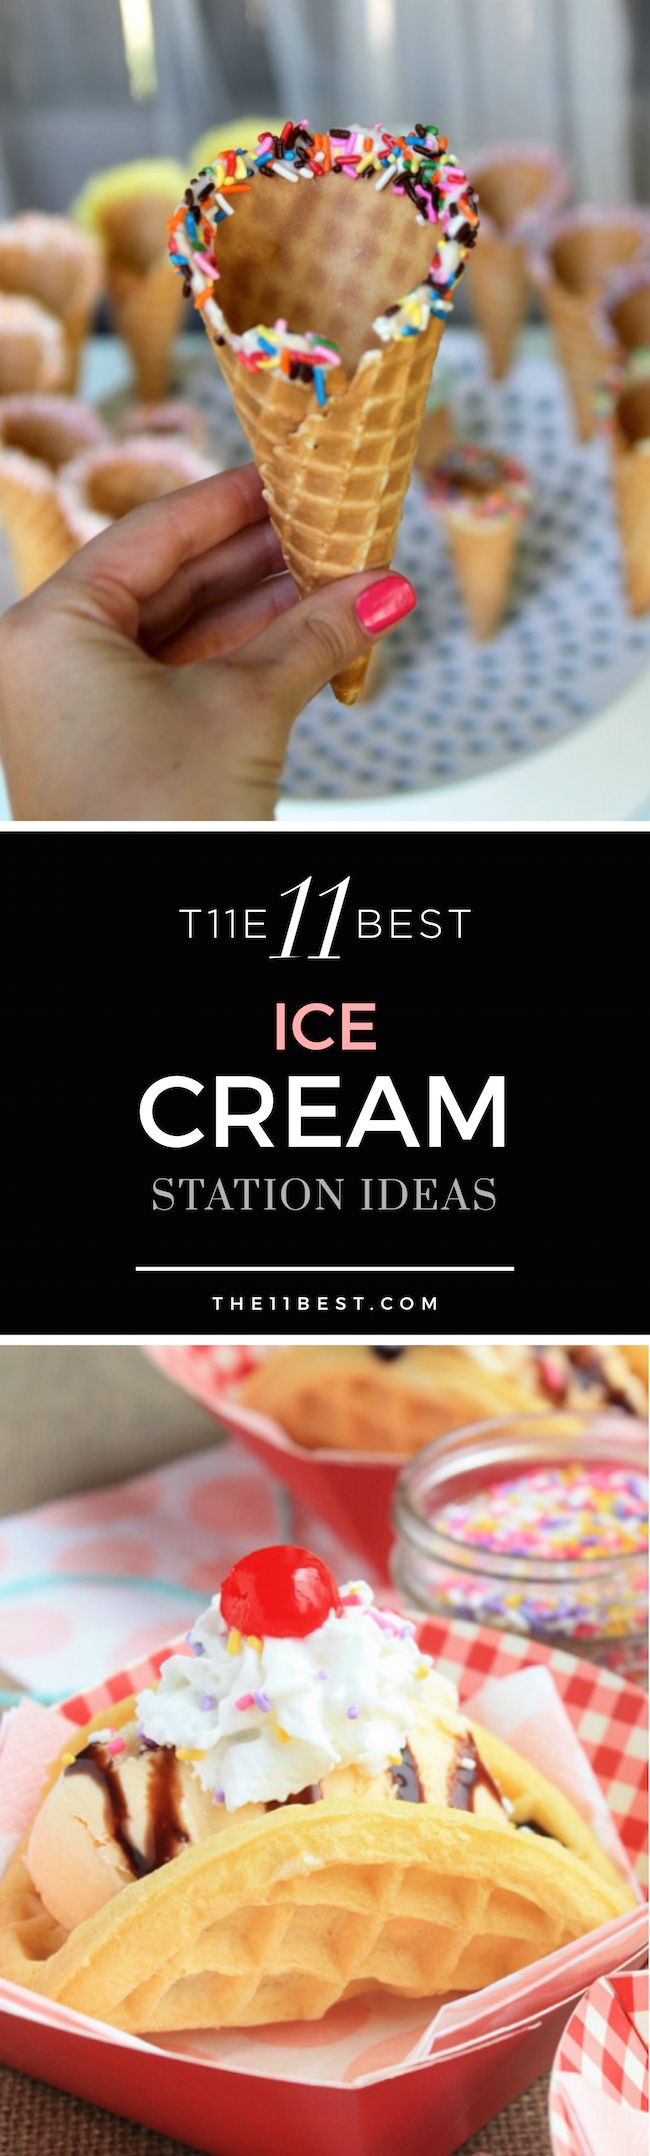 The 11 Best Ice Cream Station Ideas